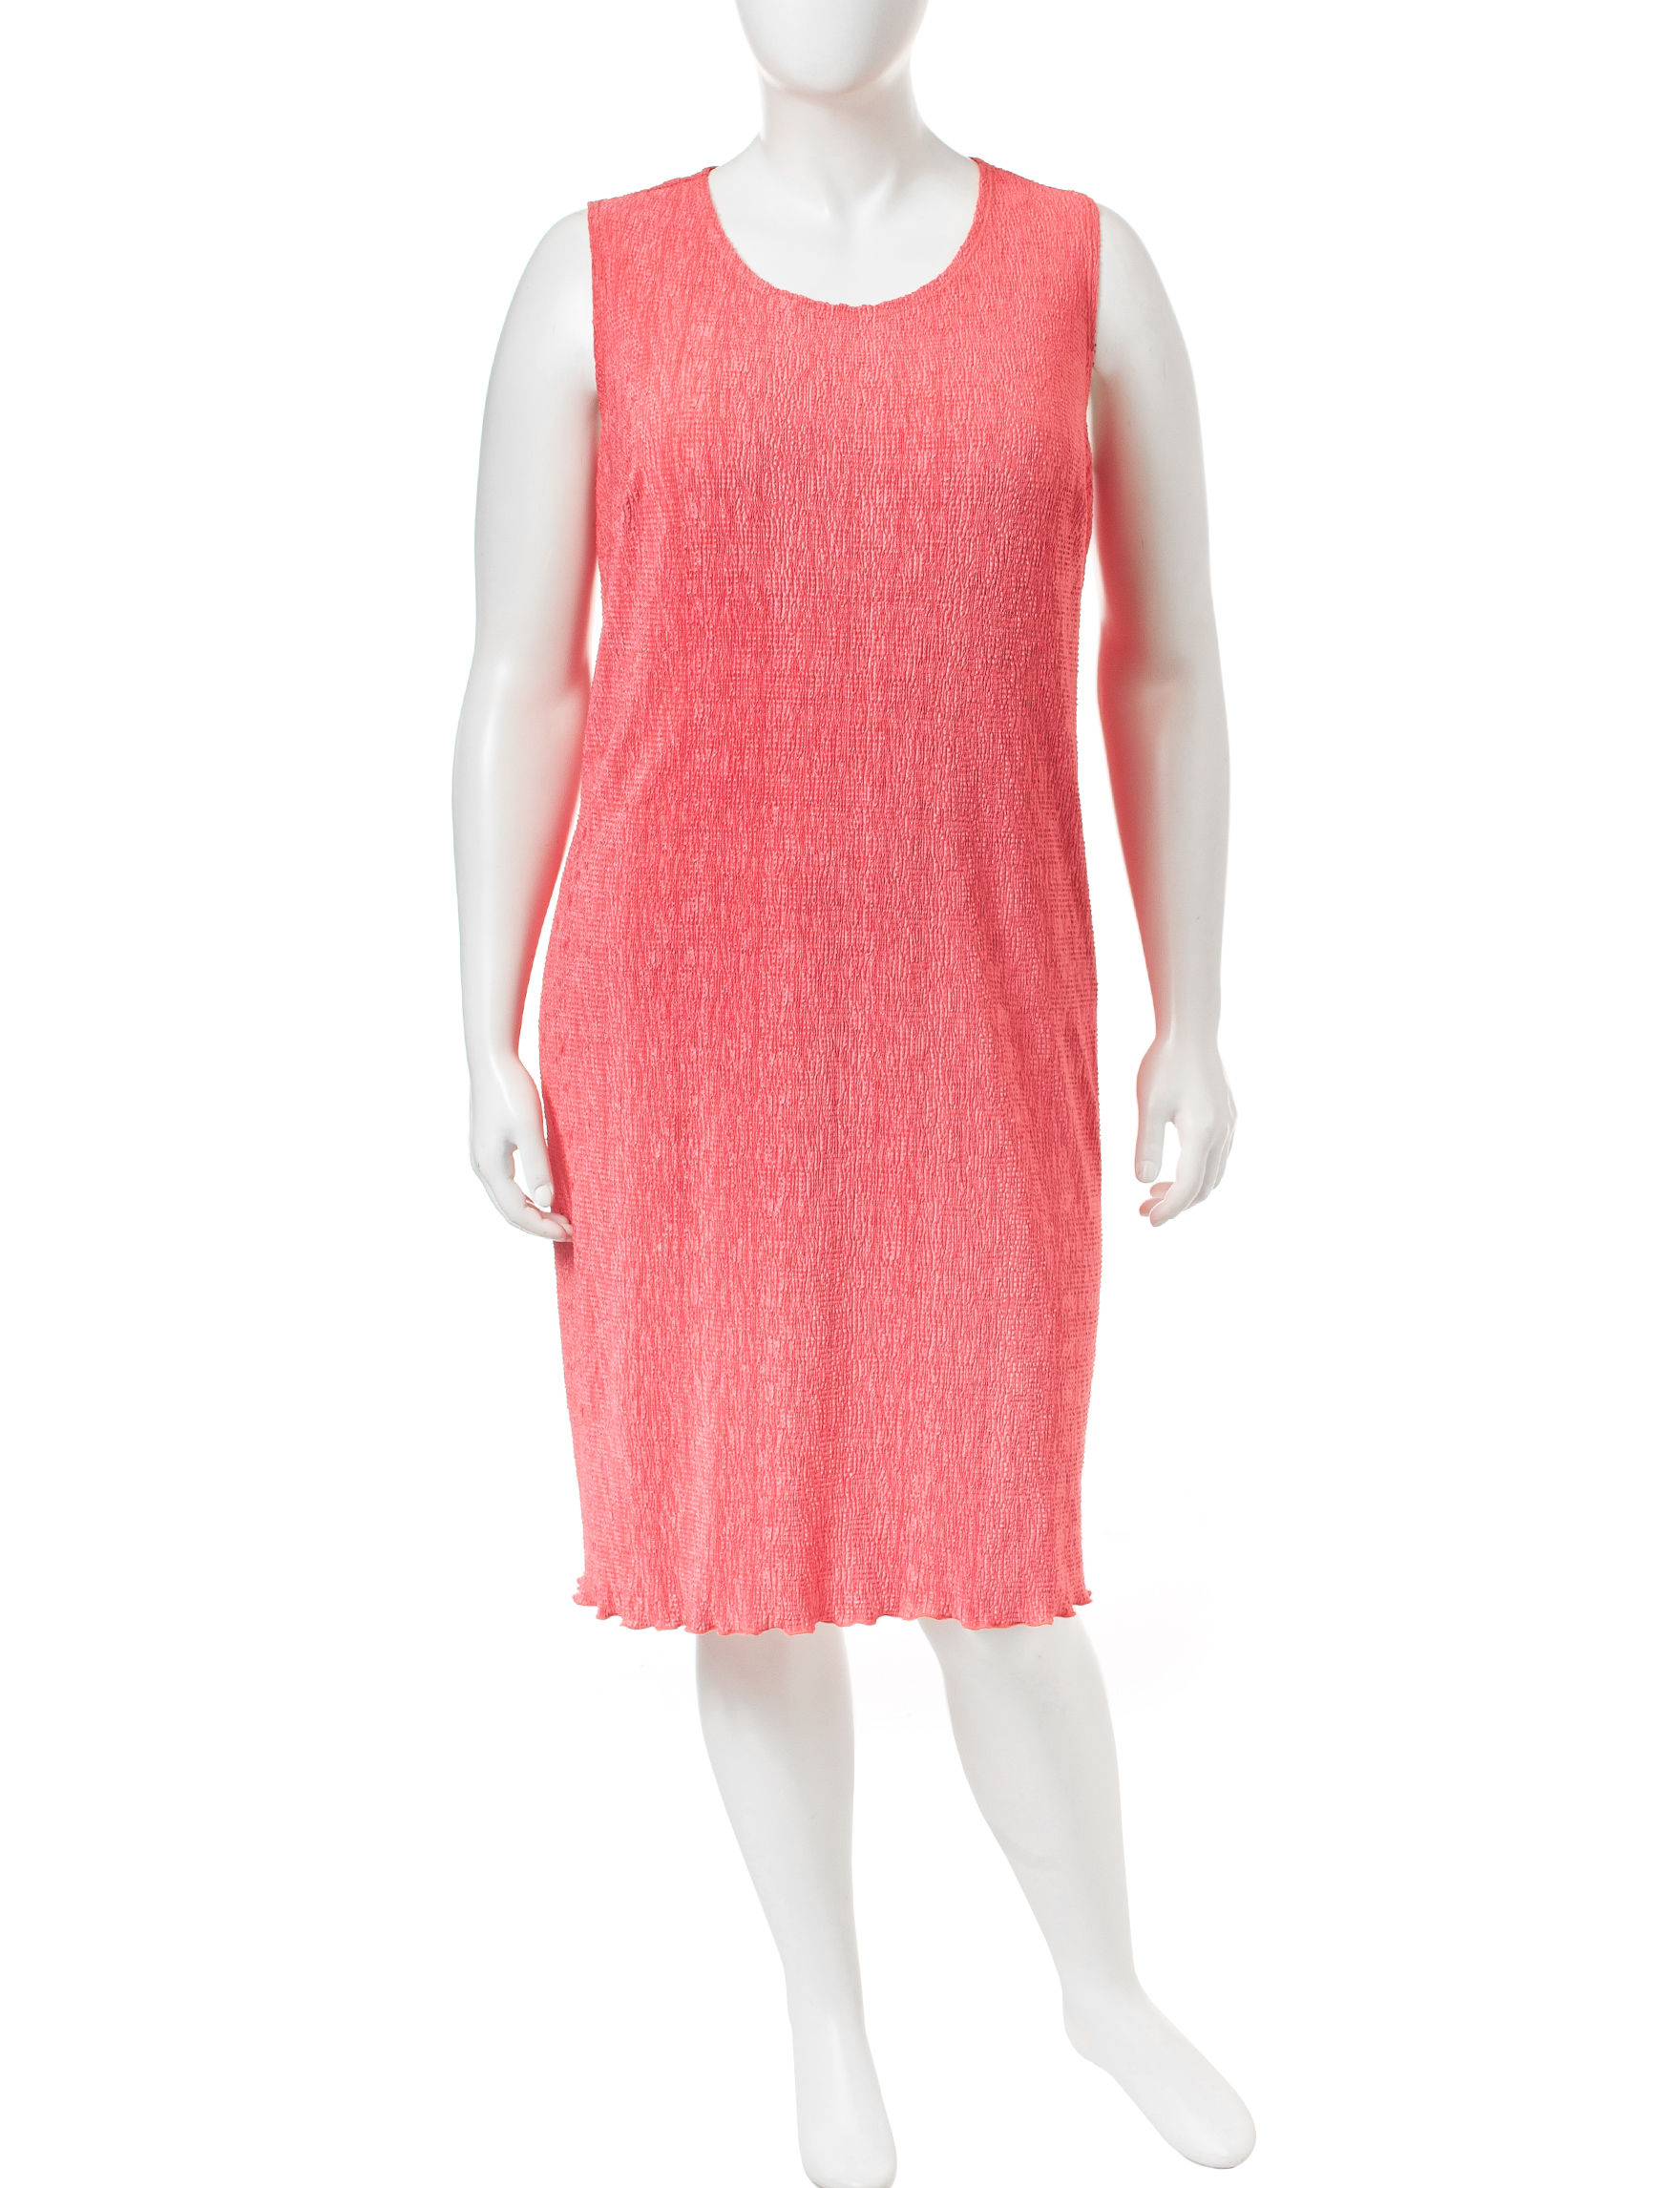 Connected Salmon Everyday & Casual Sheath Dresses